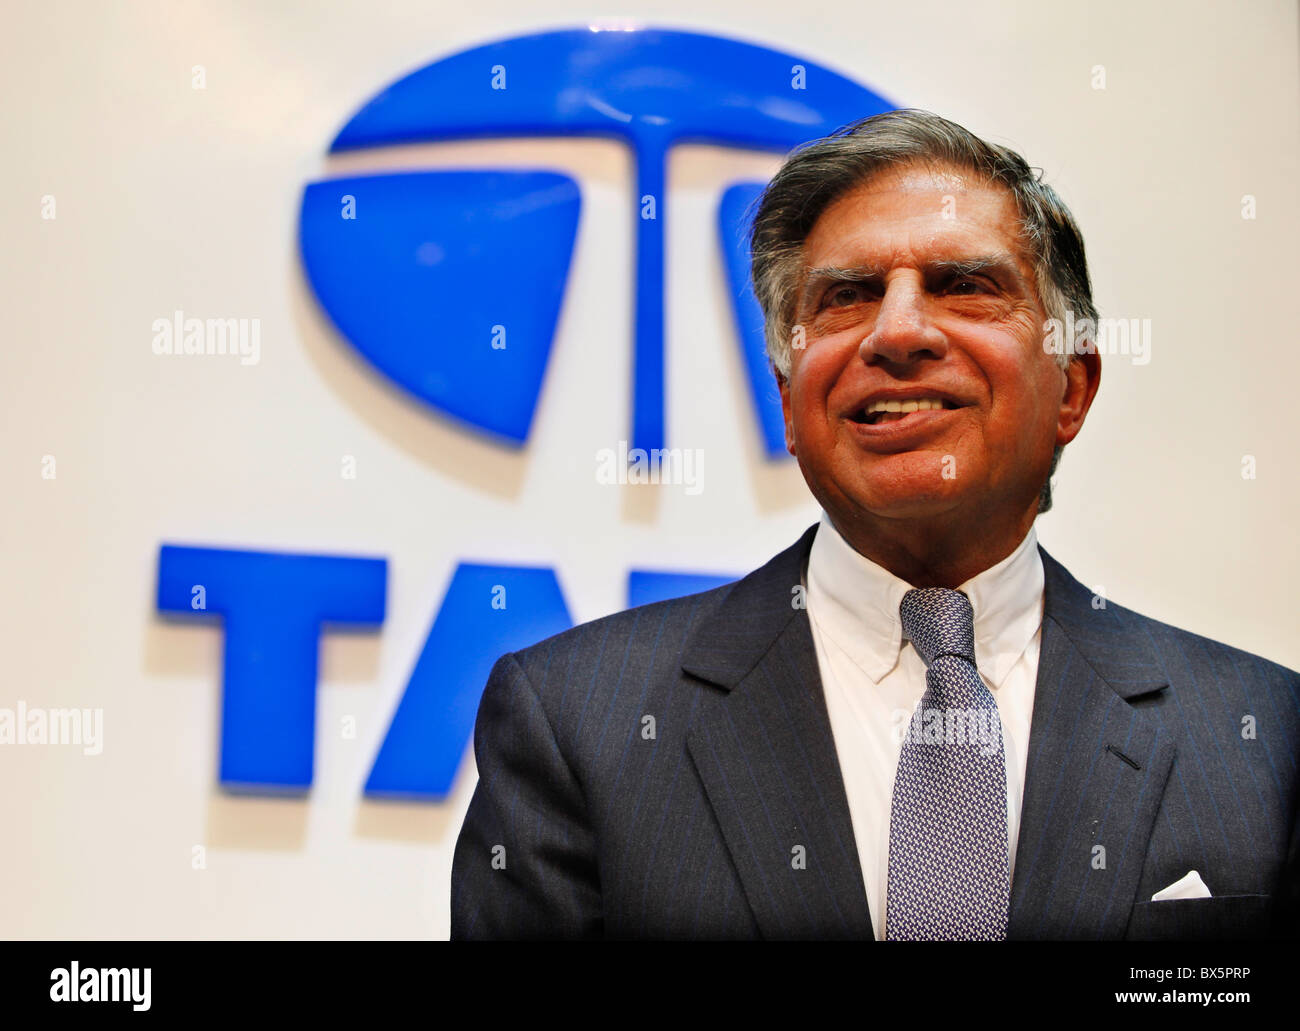 Ratan N. Tata during the 79th International Motor Show in Geneve, Tuesday, March 3, 2009.  (CTK Photo/Rene Fluger) Stock Photo